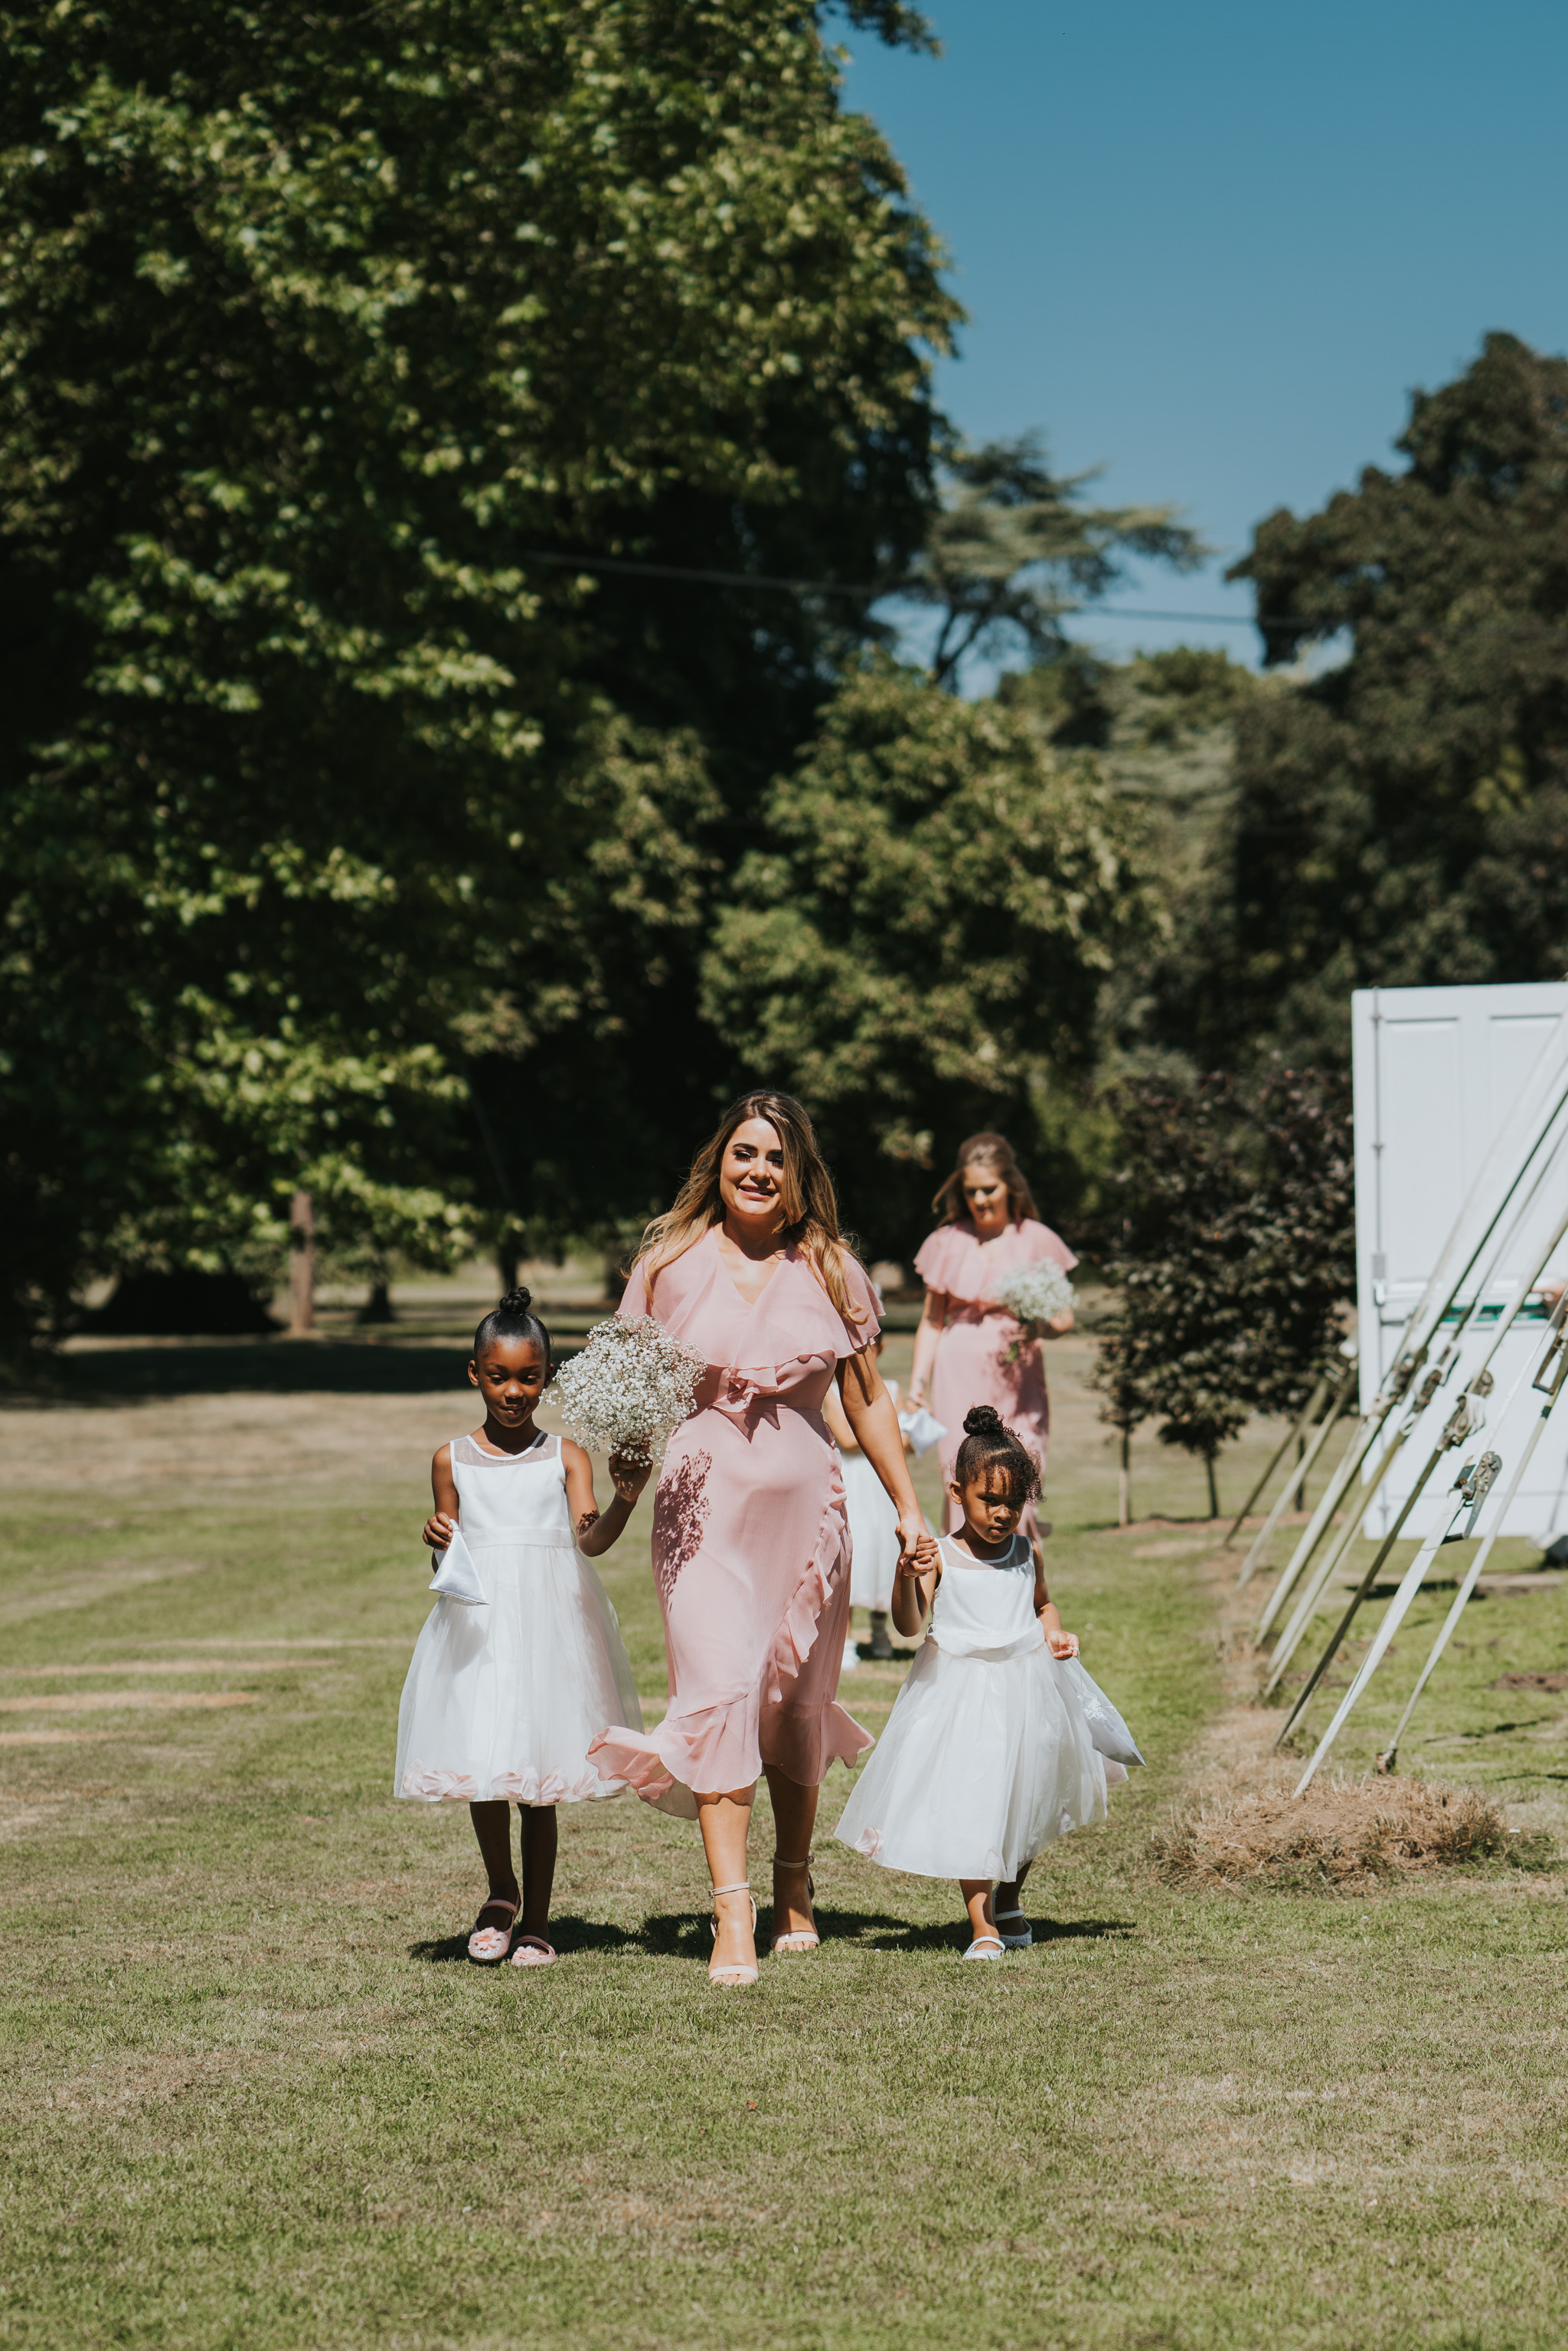 Sophie-Christian-Prested-Hall-DIY-Boho-Outdoor-Wedding-Grace-Elizabeth-Alternative-Wedding-Photographer-Colchester-Essex (27 of 113).jpg